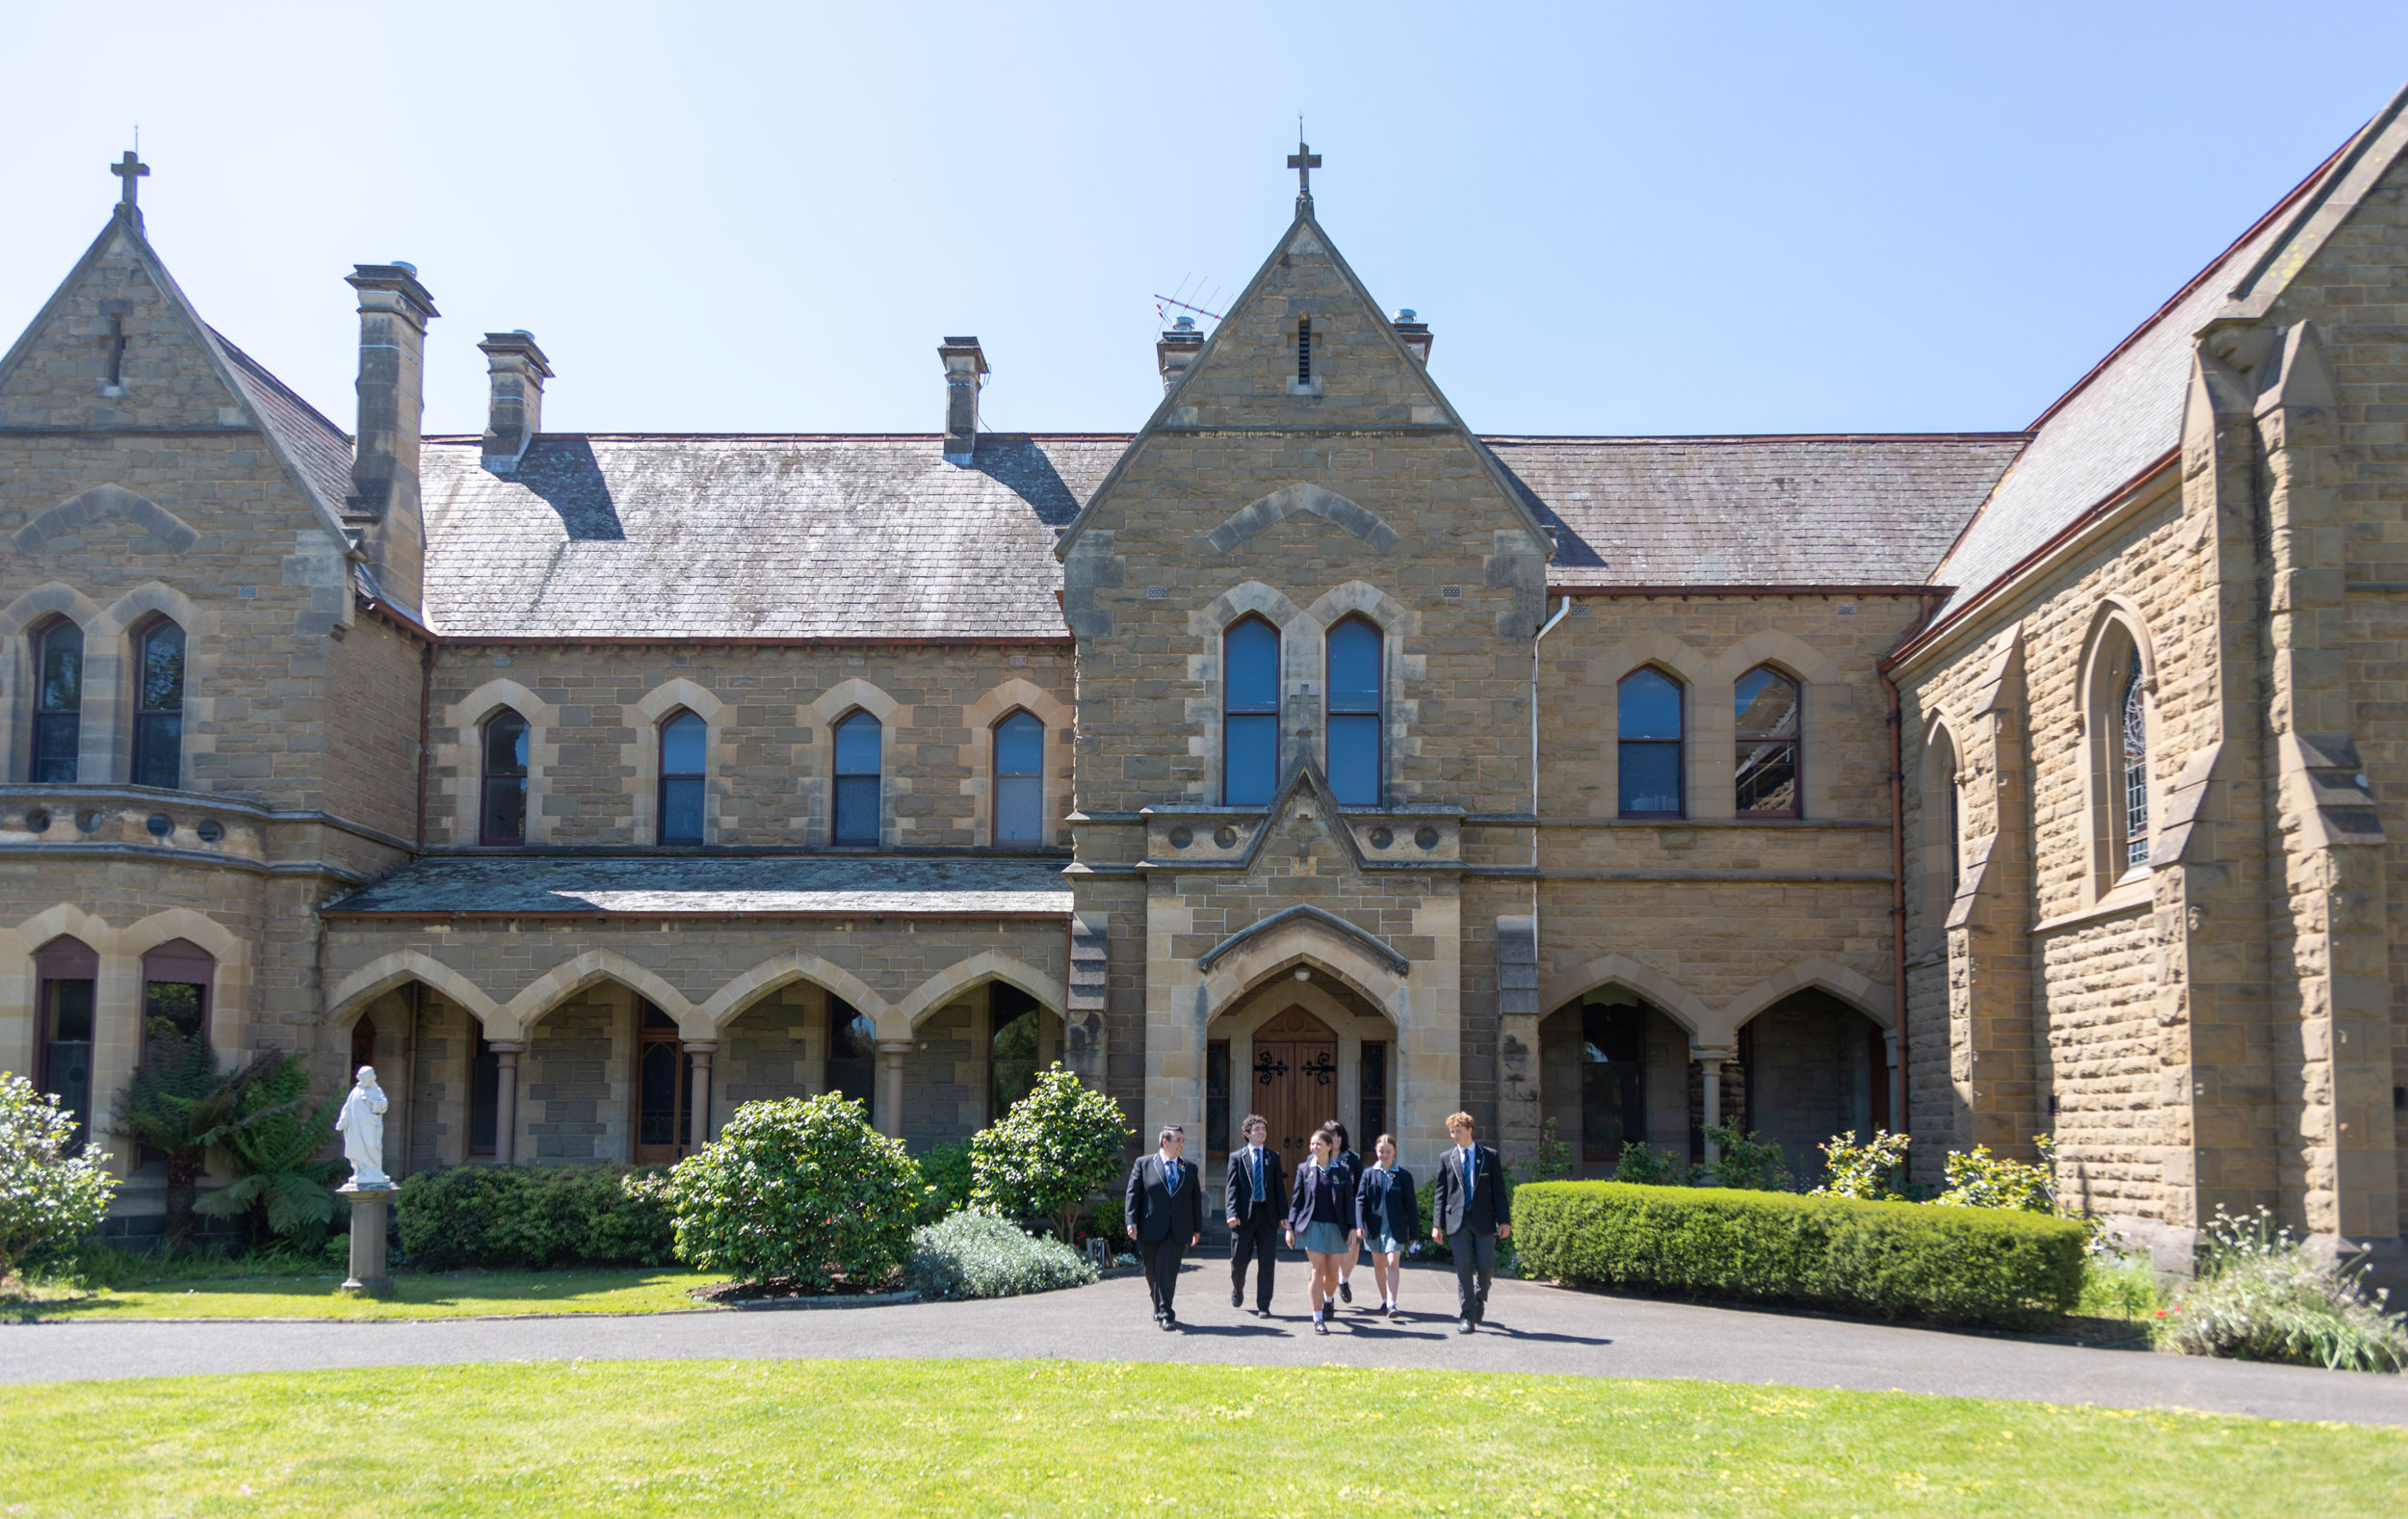 A new era in education for two of Melbourne's most historic schools